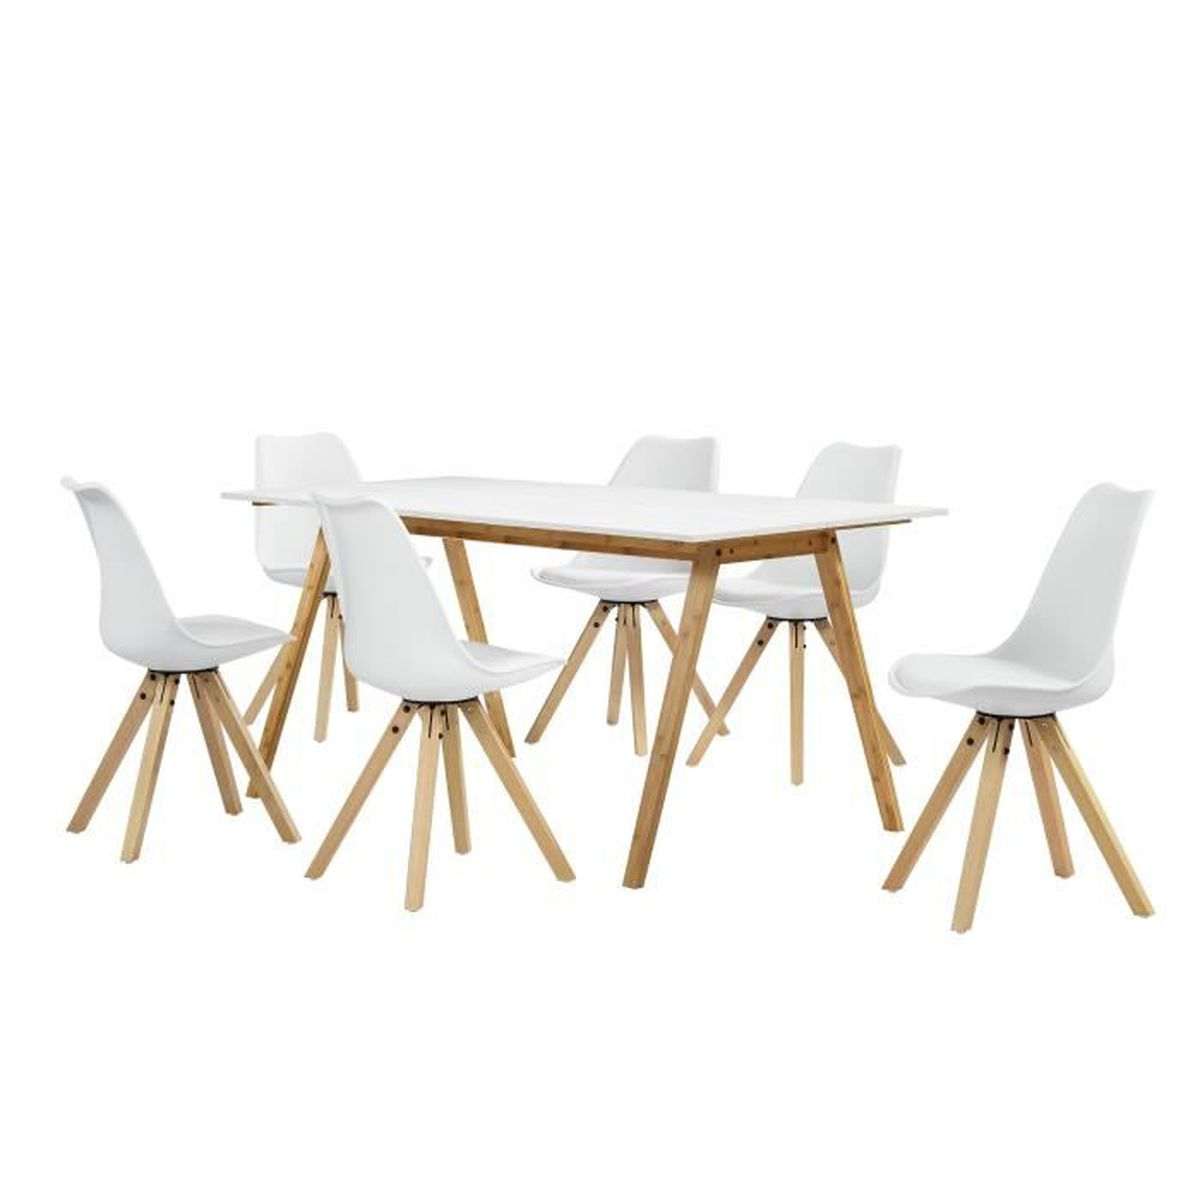 Table manger bambou blanc avec 6 chaises blanc for Table a manger chaises